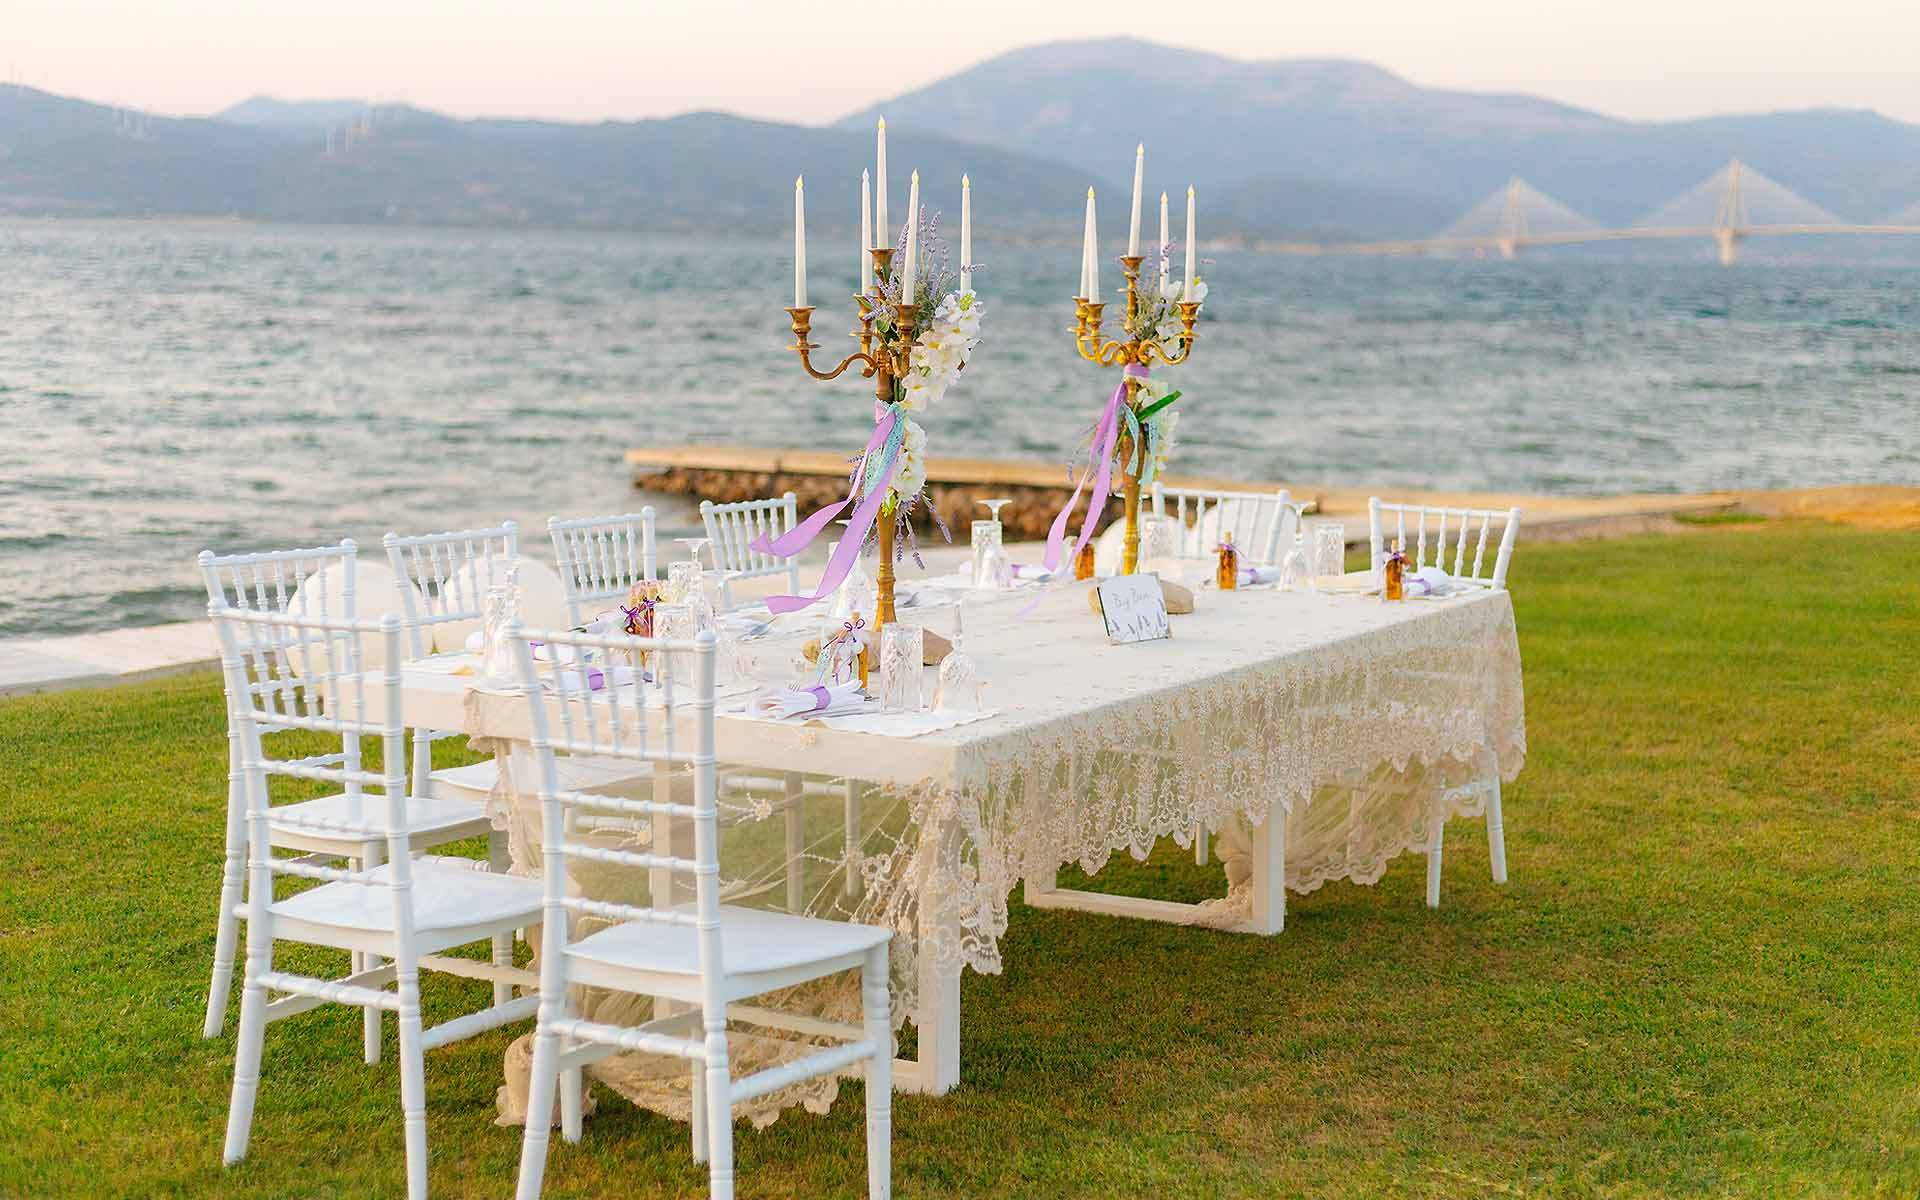 Beach-wedding-head-table-decoration-by-Diamond-Events-Wedding-Event-planning-services